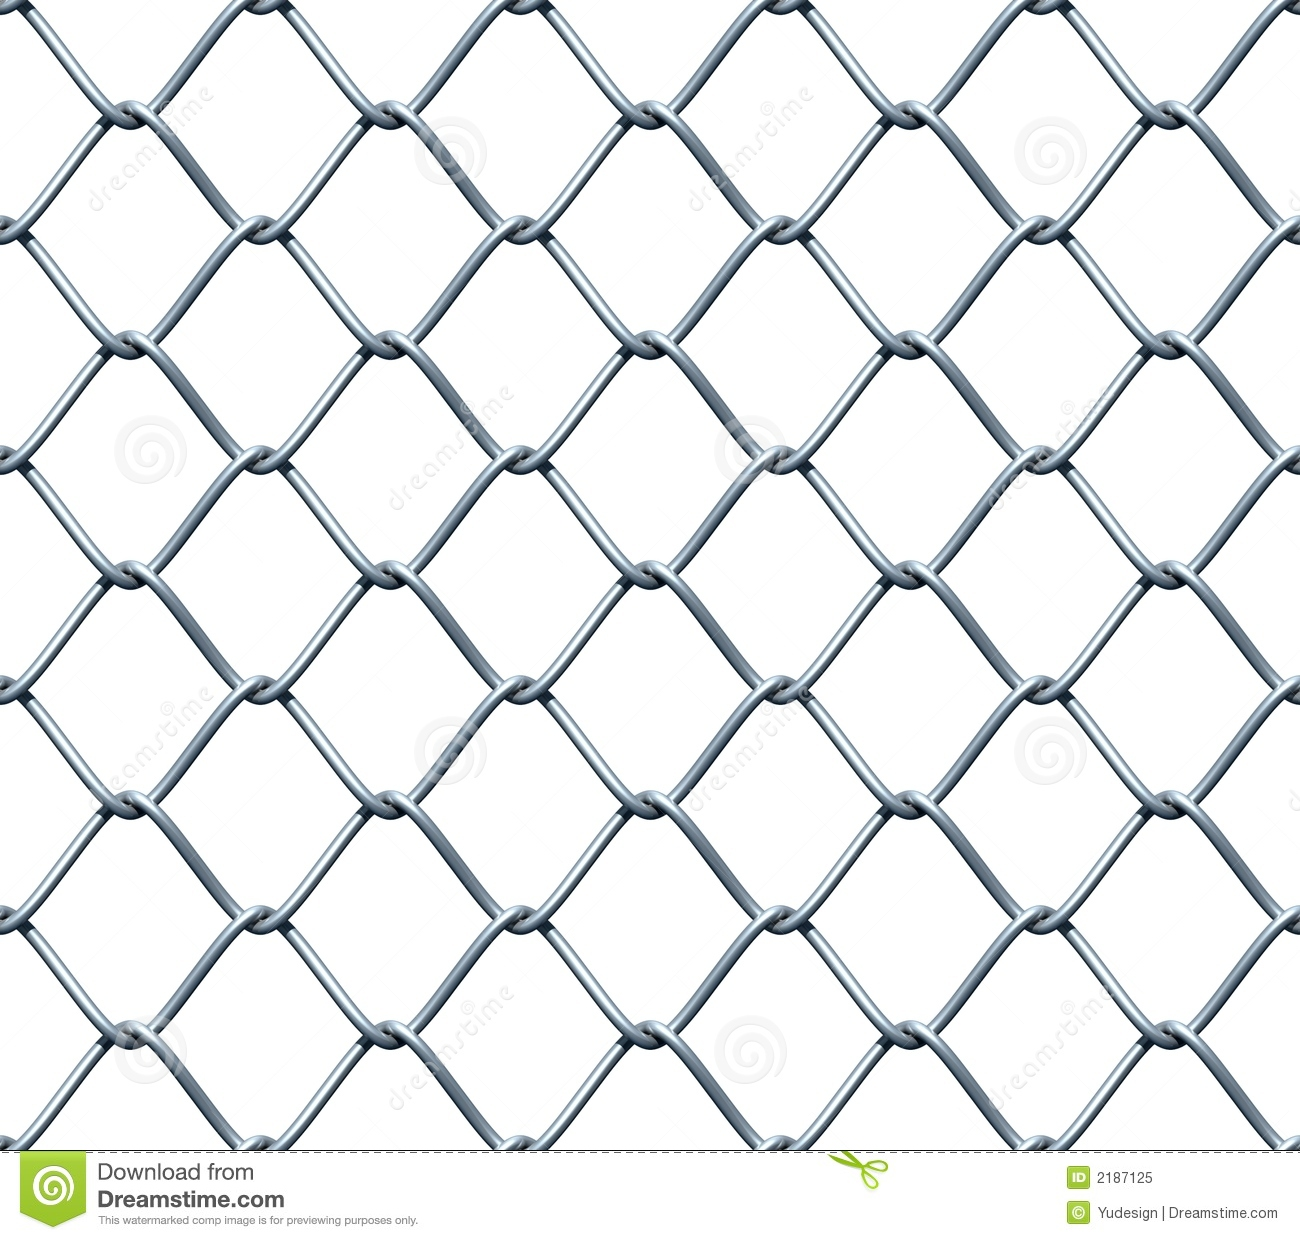 Fence png transparent images png all - Seamless Chainlink Fence Royalty Free Stock Photo Image